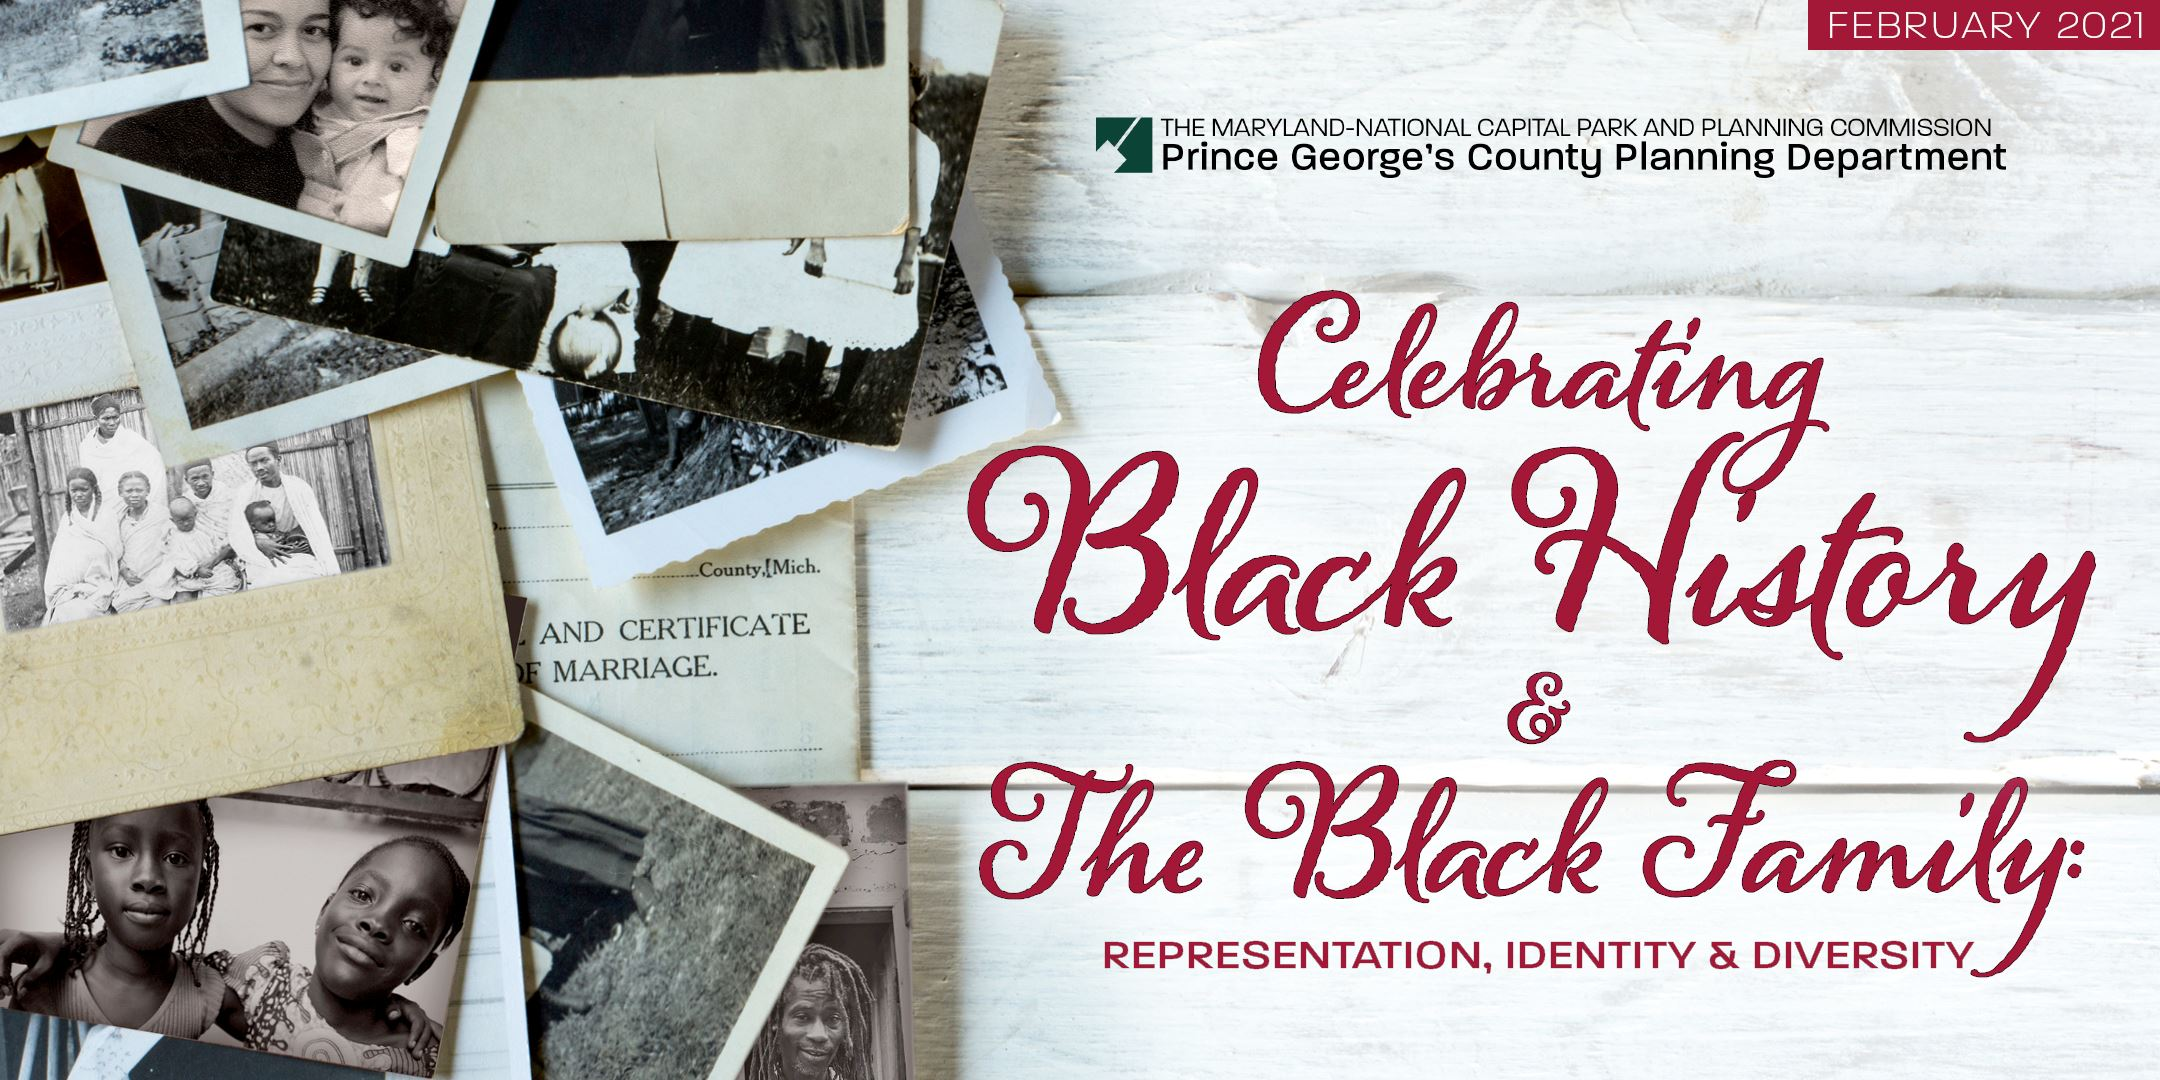 2021 Black History Month Celebration Prince George's Planning Department